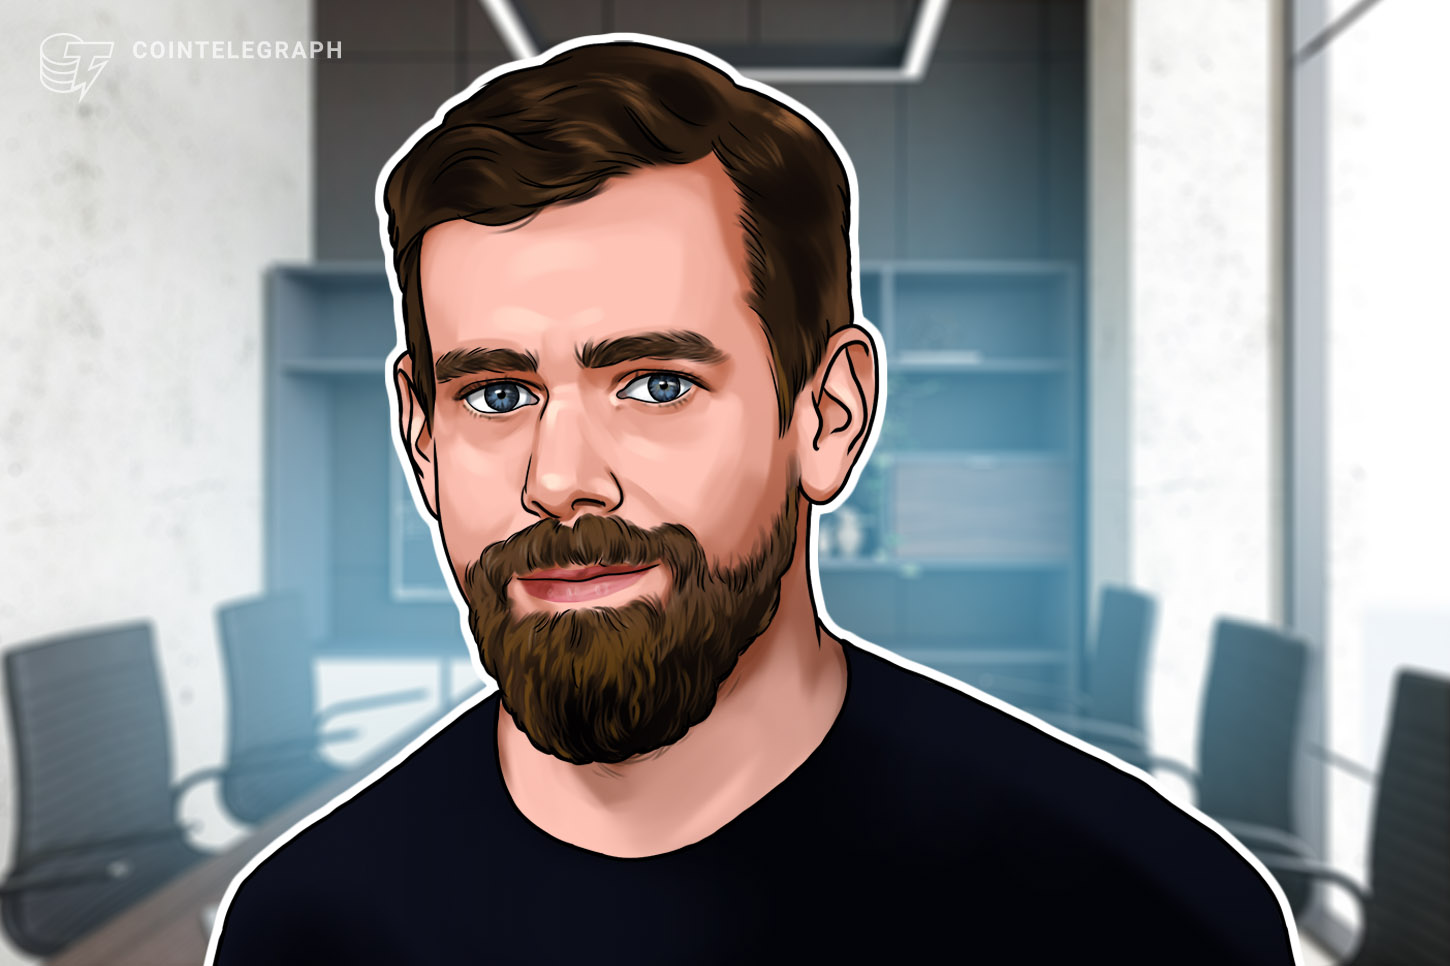 Bitcoin is key to the future of Twitter, Jack Dorsey says